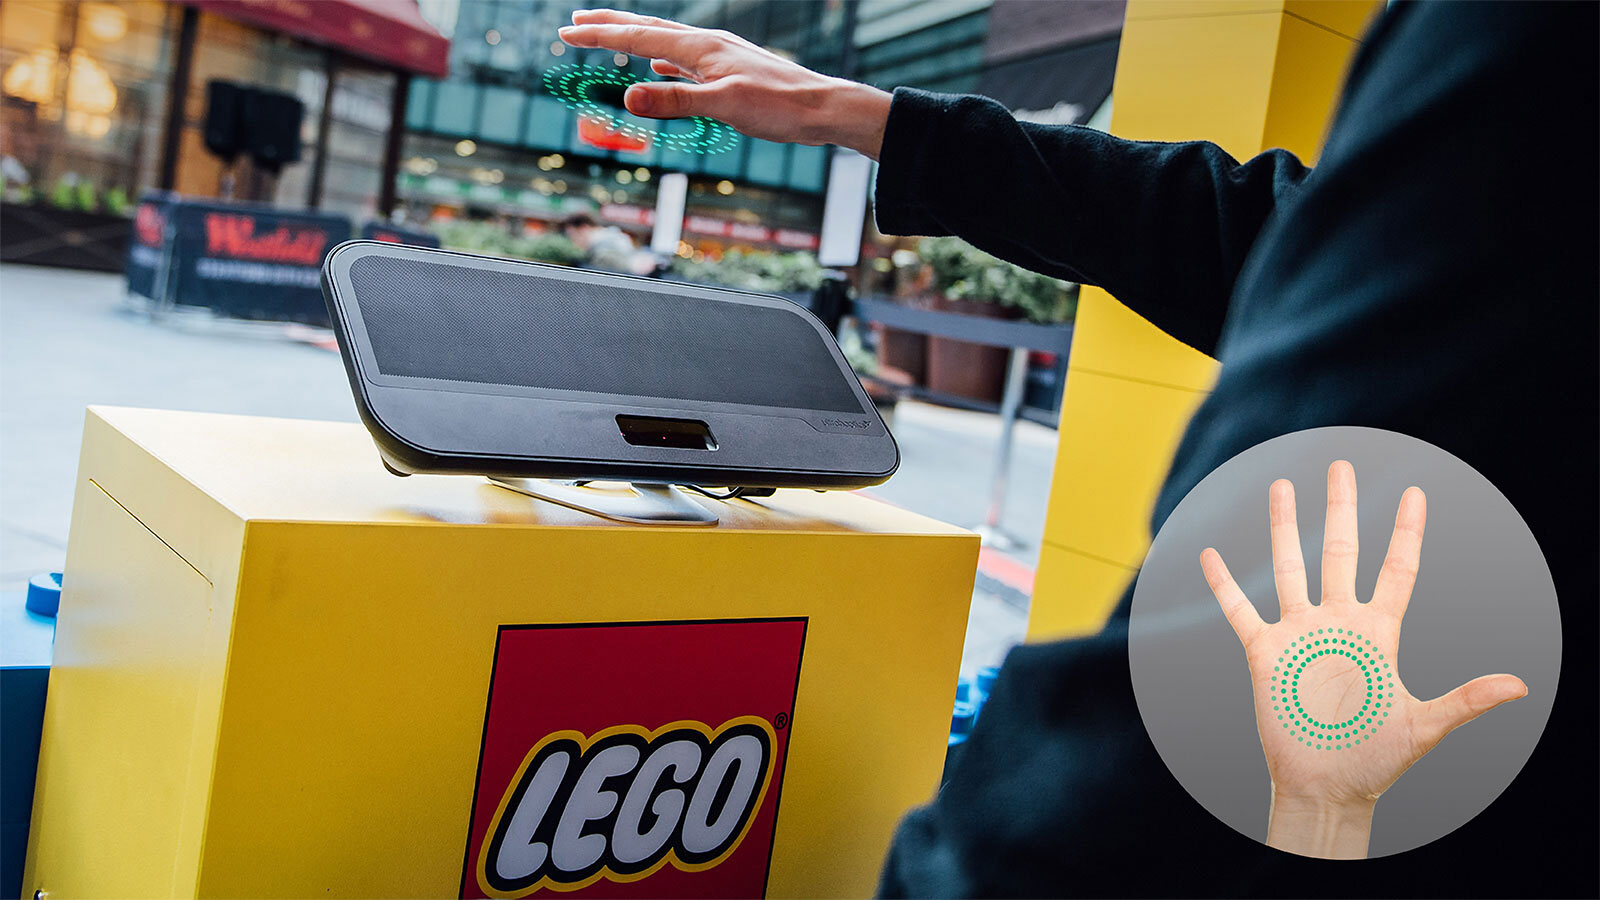 LEGO using Ultraleap haptics technology for an interactive experience on a persons hand